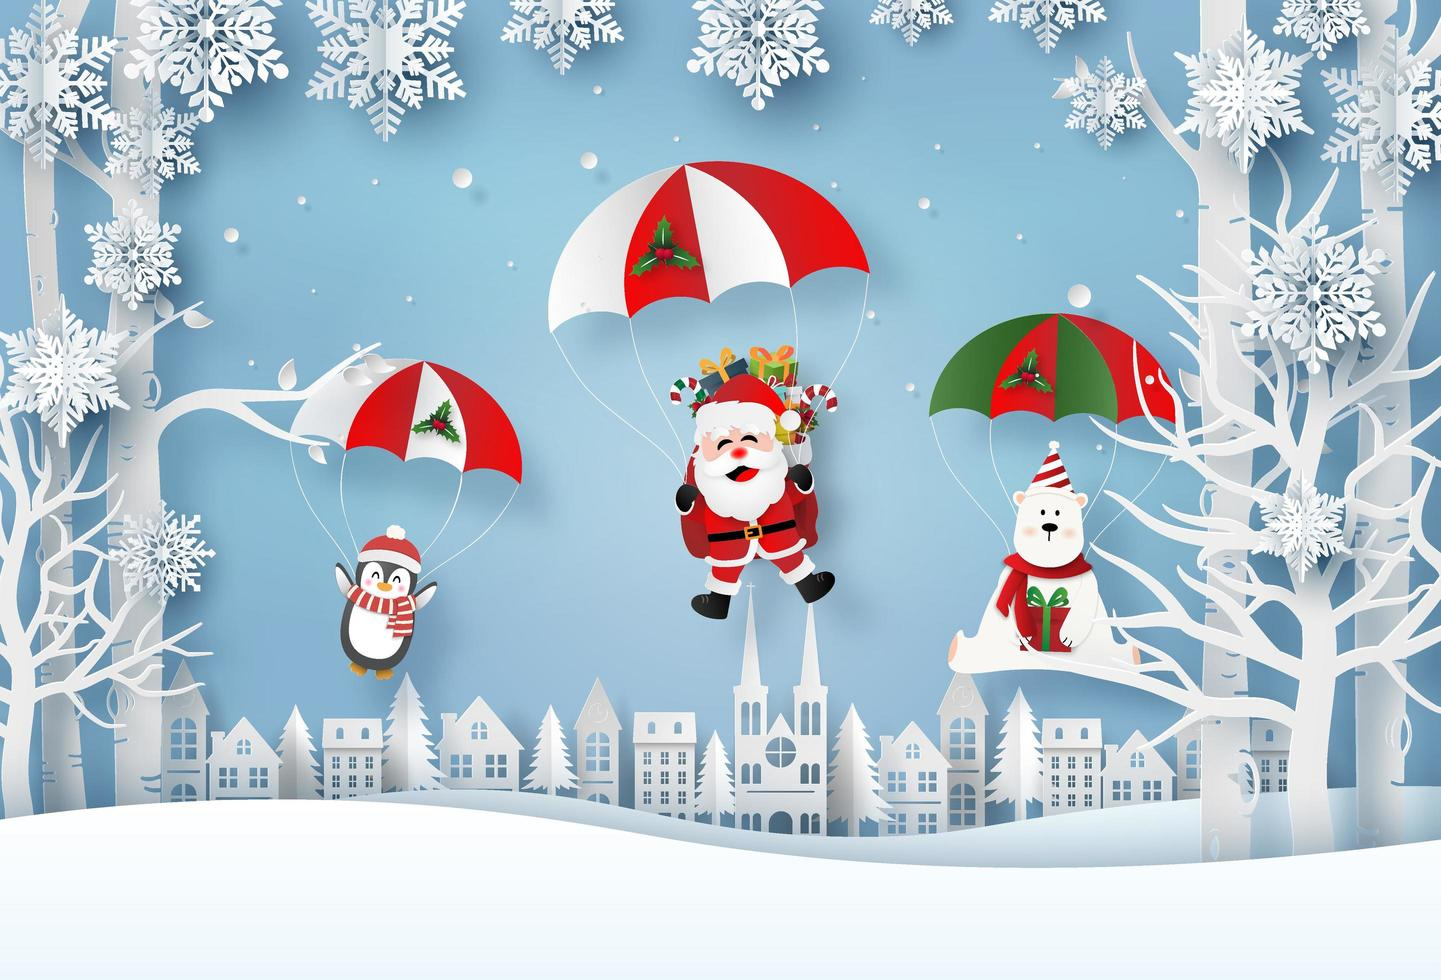 Origami paper art of Santa Claus and Christmas characters parachute jump in the village, Merry Christmas and Happy New Year vector